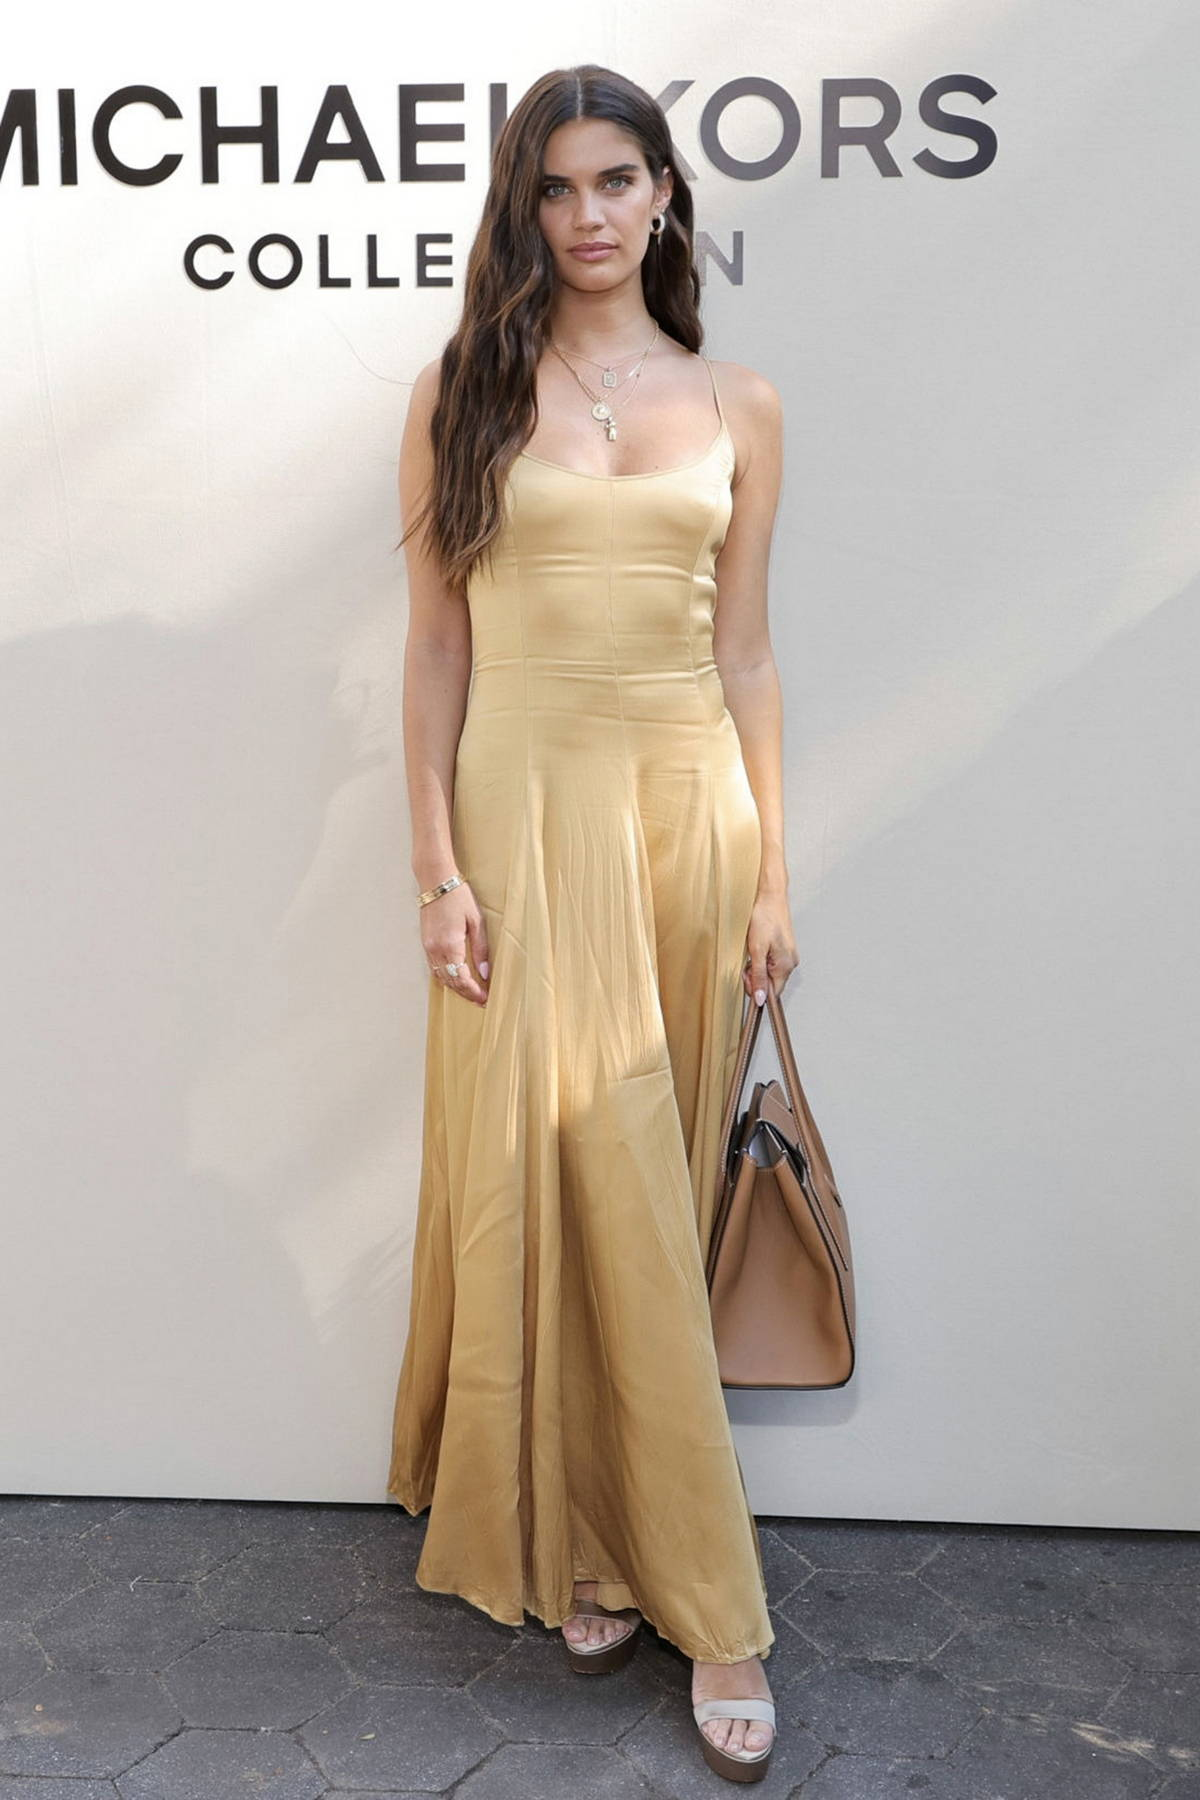 Sara Sampaio attends the Michael Kors SP22 fashion show during New York Fashion Week in New York City